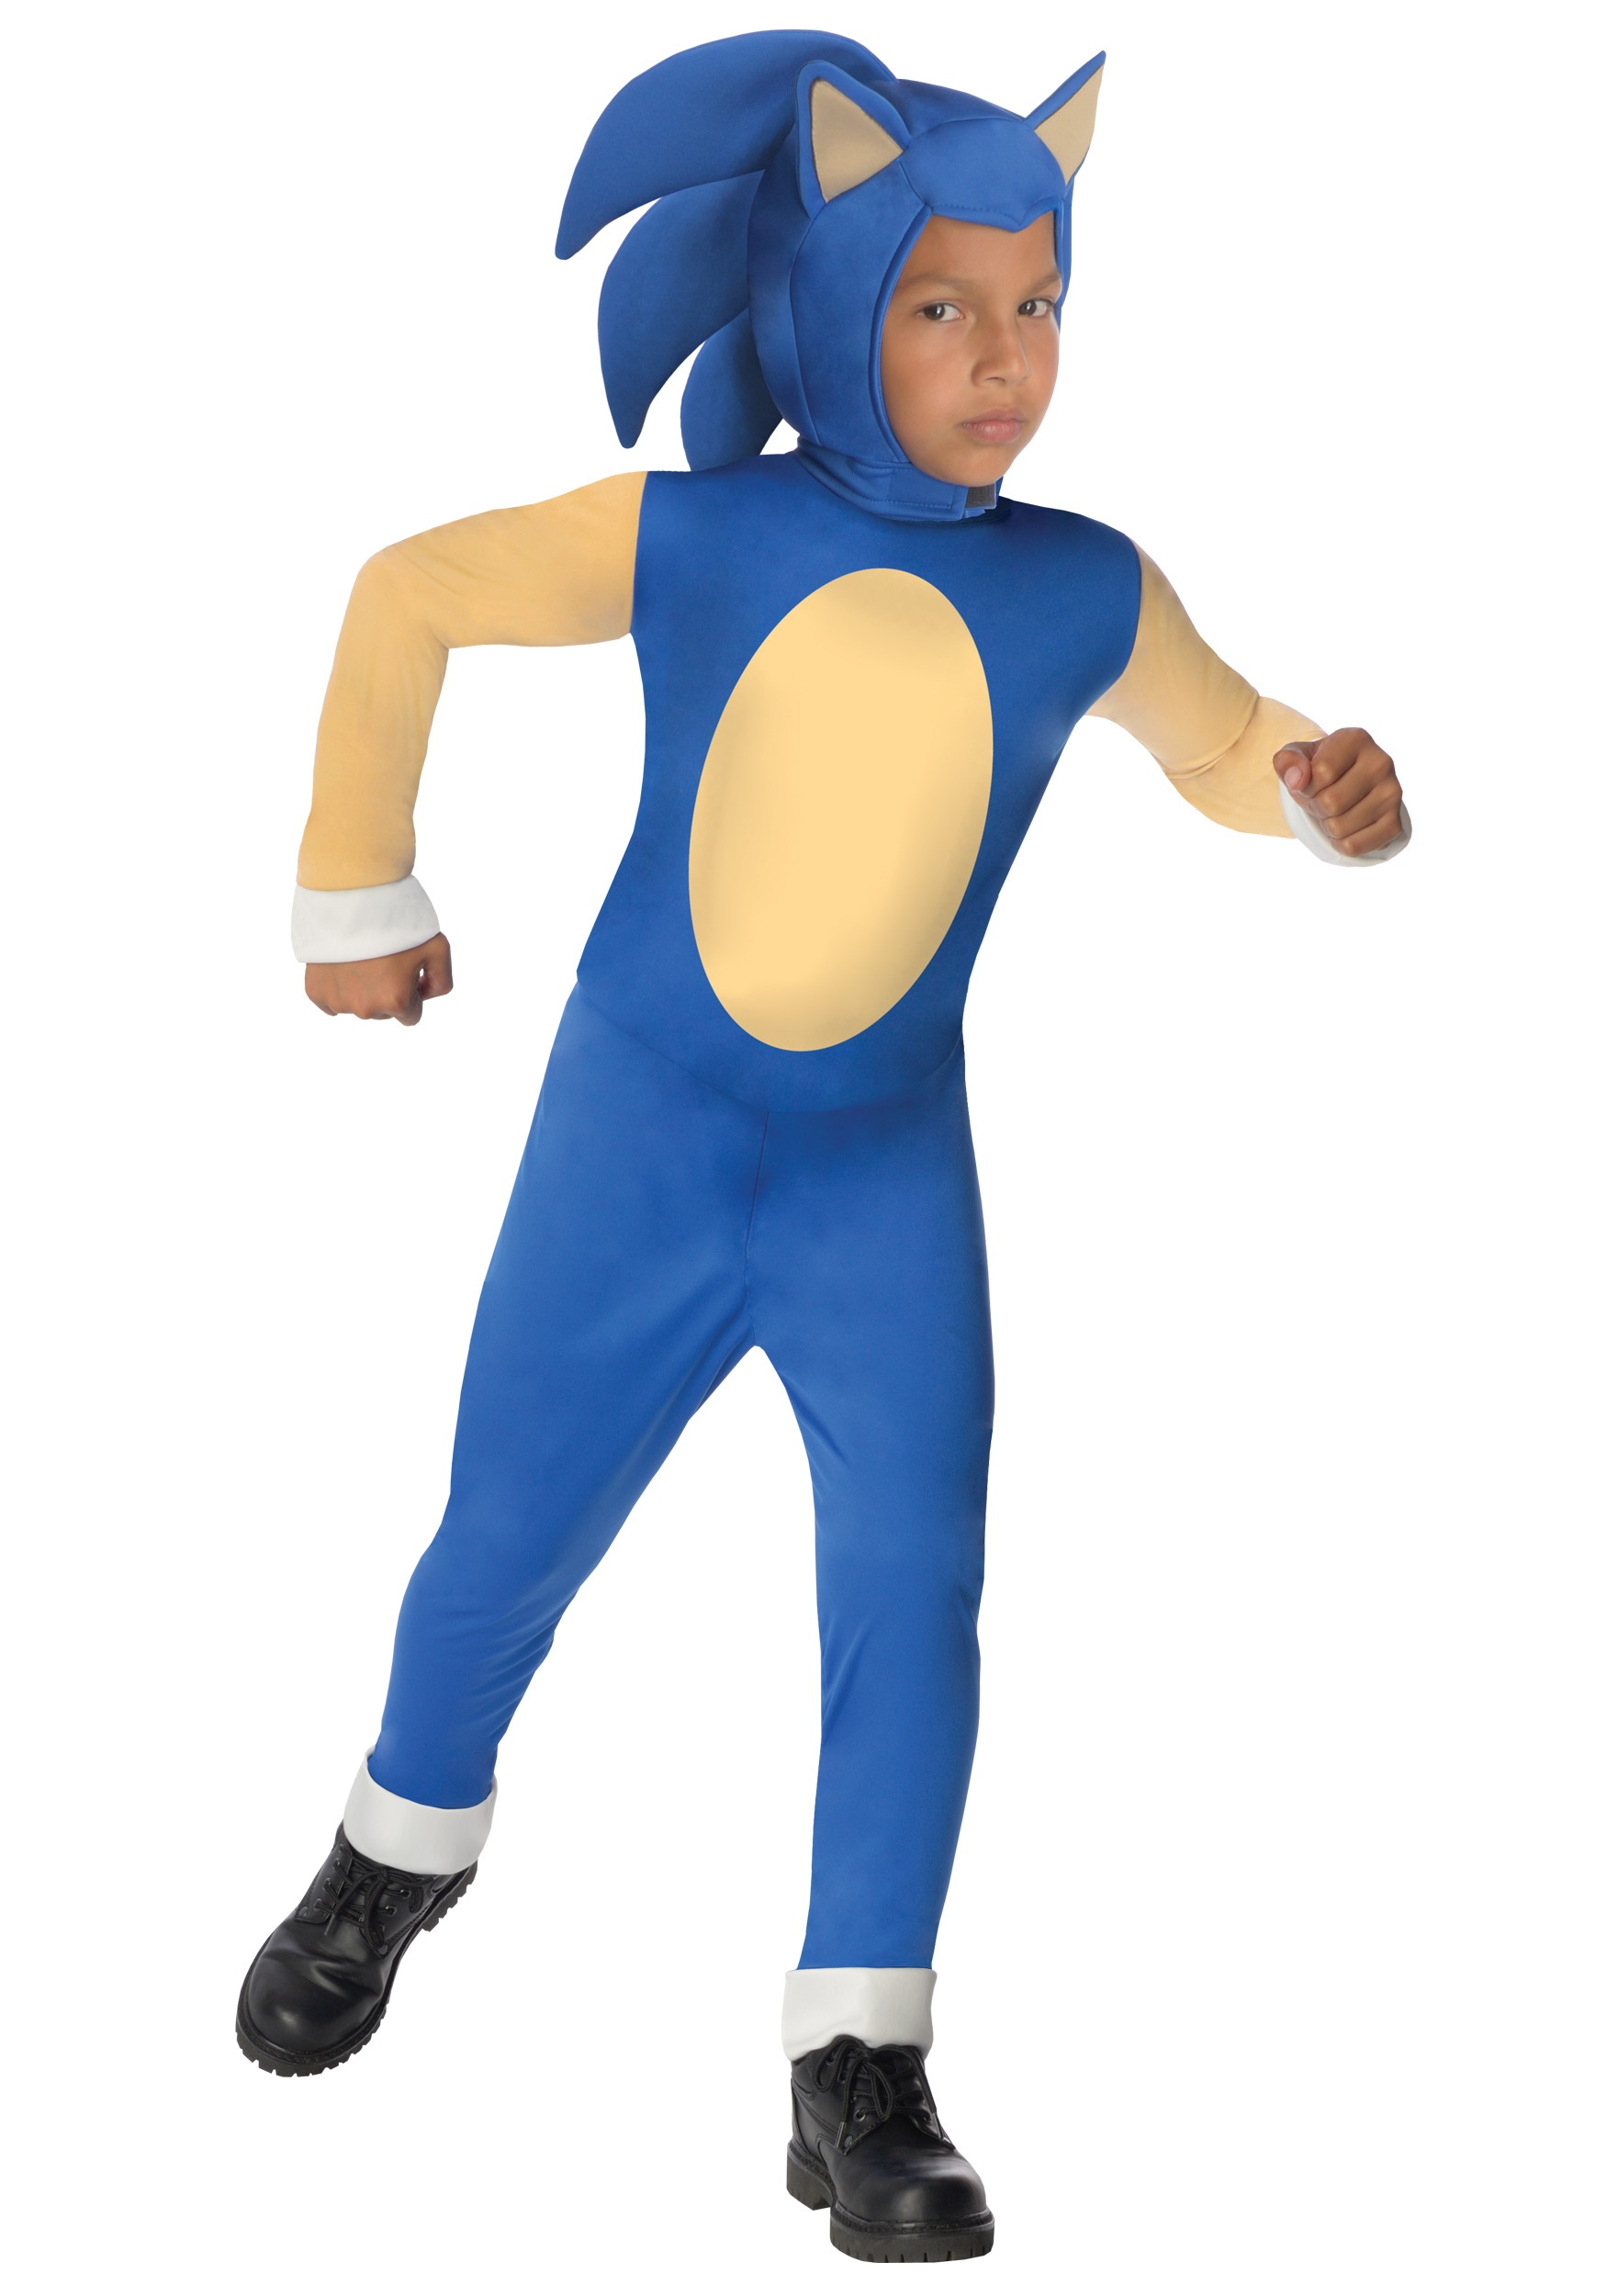 6412926bd96b Sonic the Hedgehog Costumes - Classic Video Game